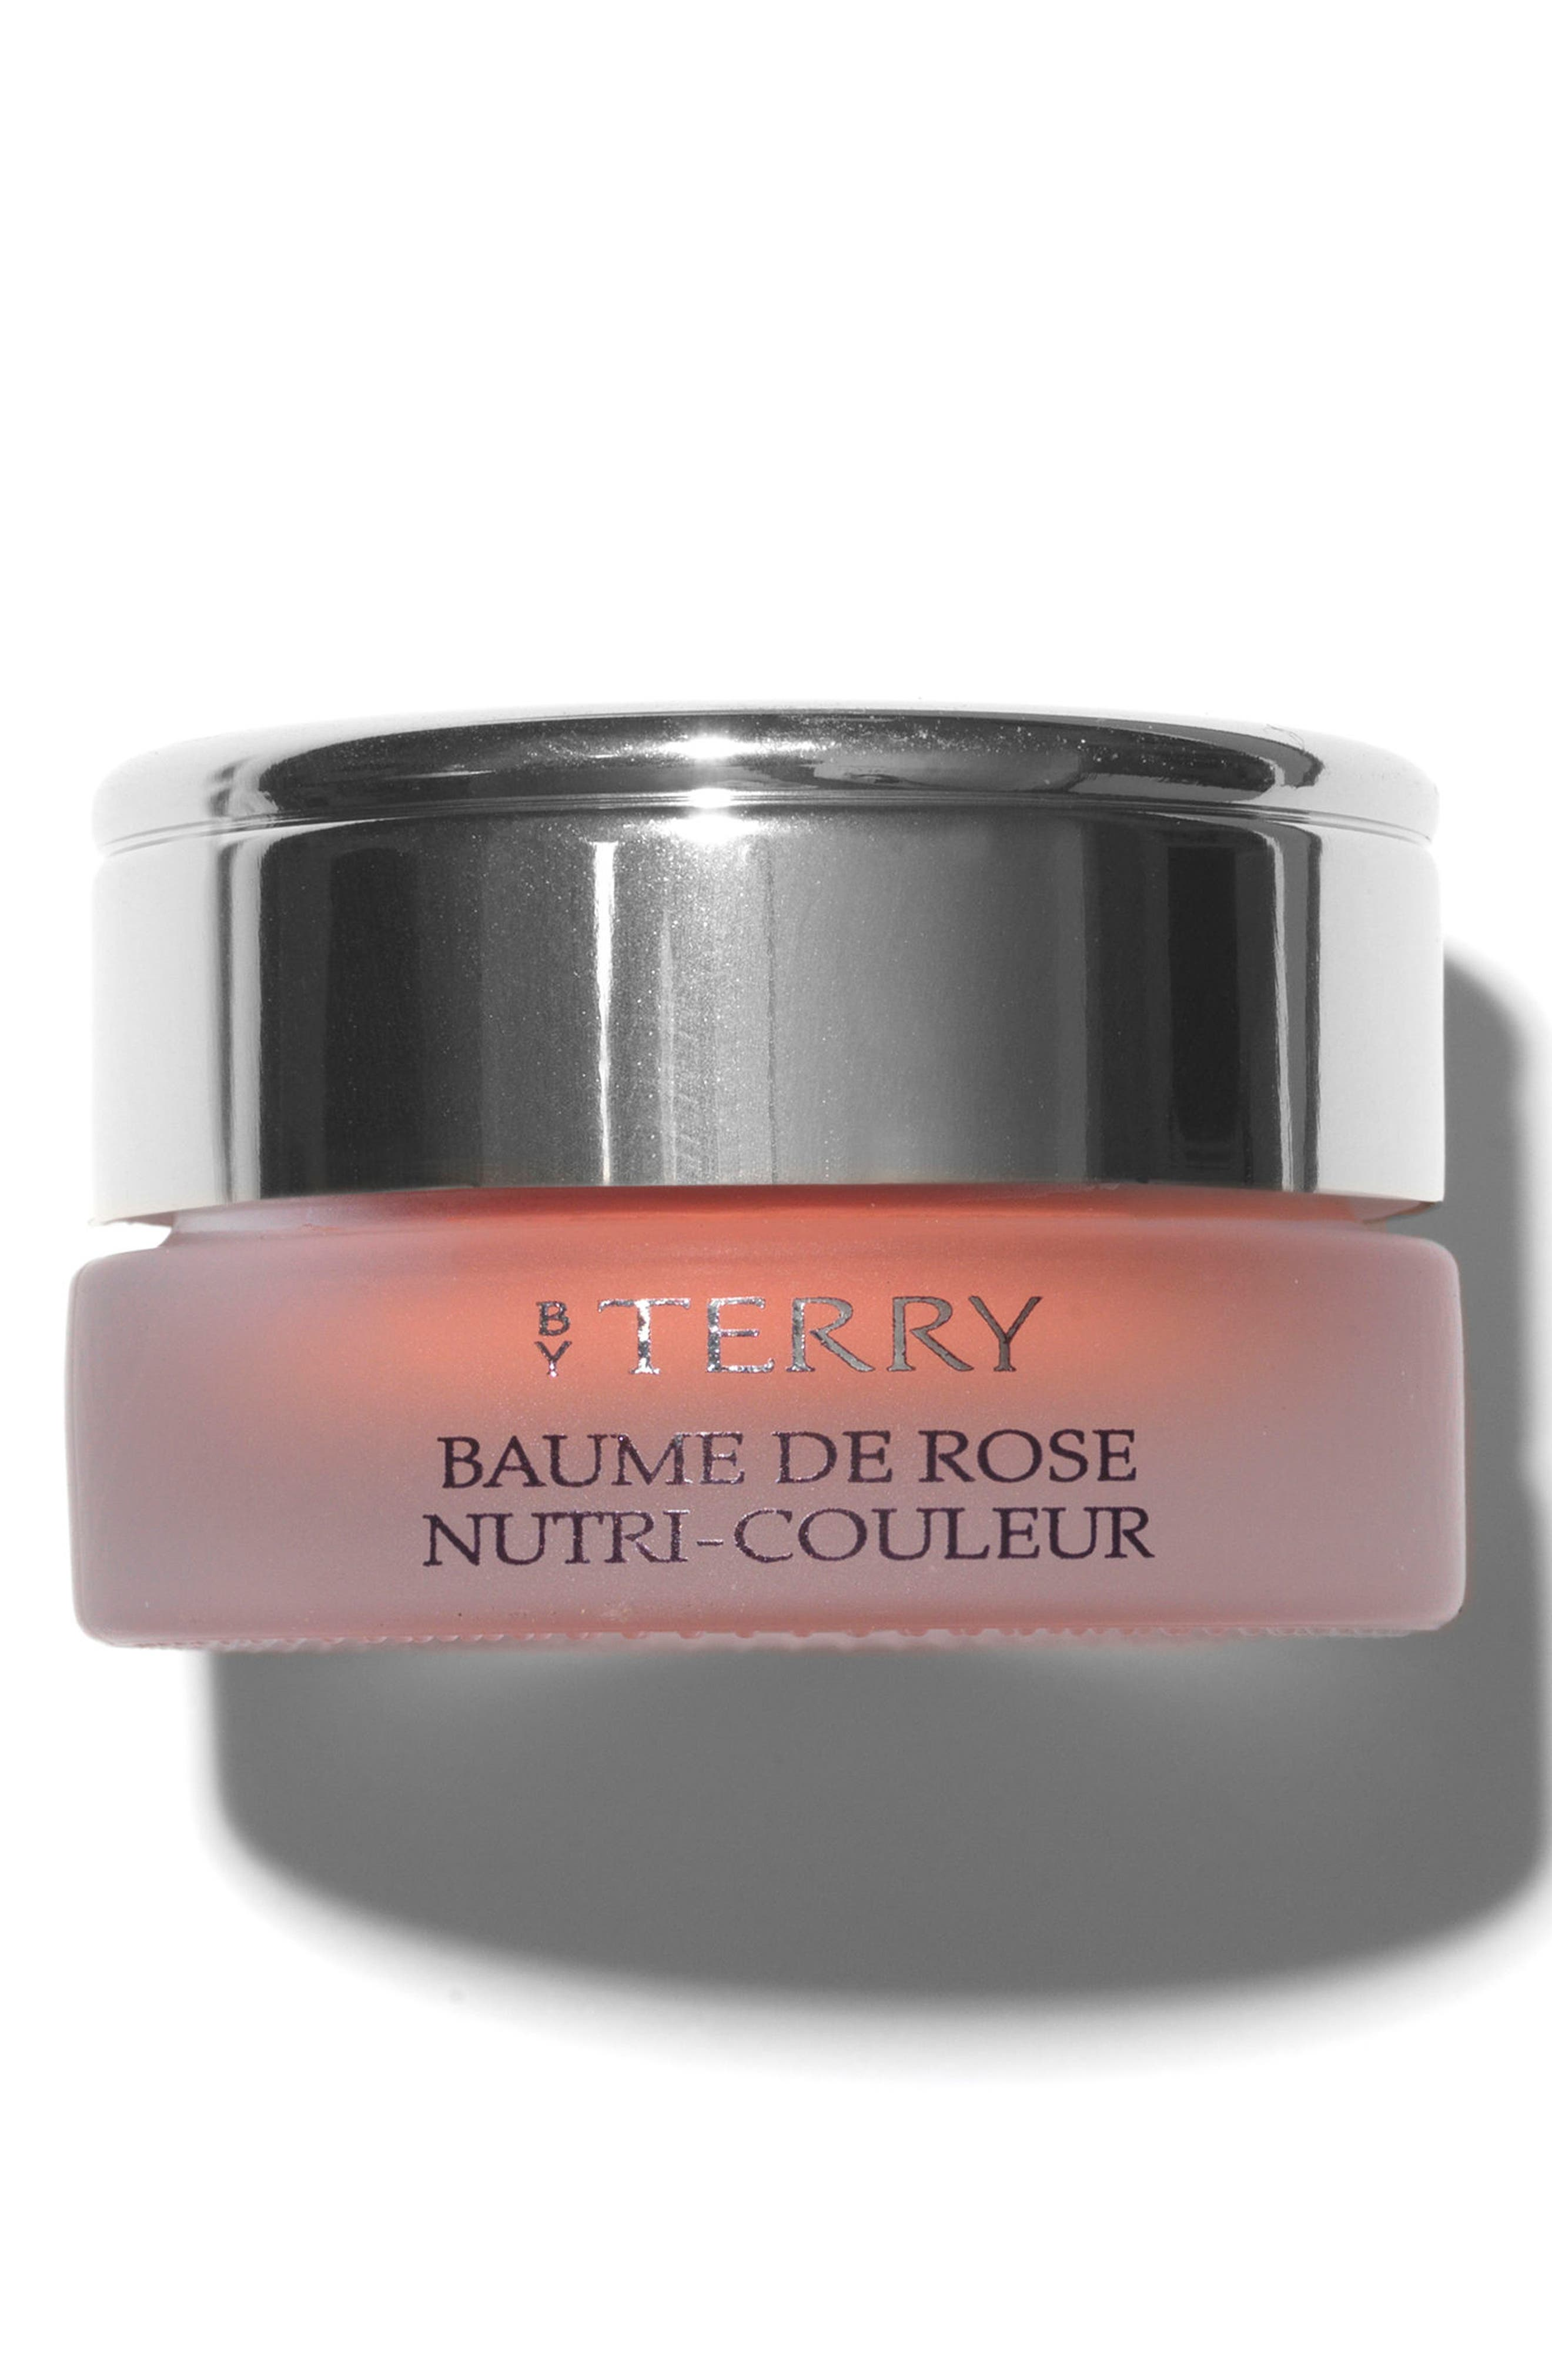 SPACE.NK.apothecary By Terry Baume de Rose Nutri-Couleur,                         Main,                         color, 1 ROSY BABE